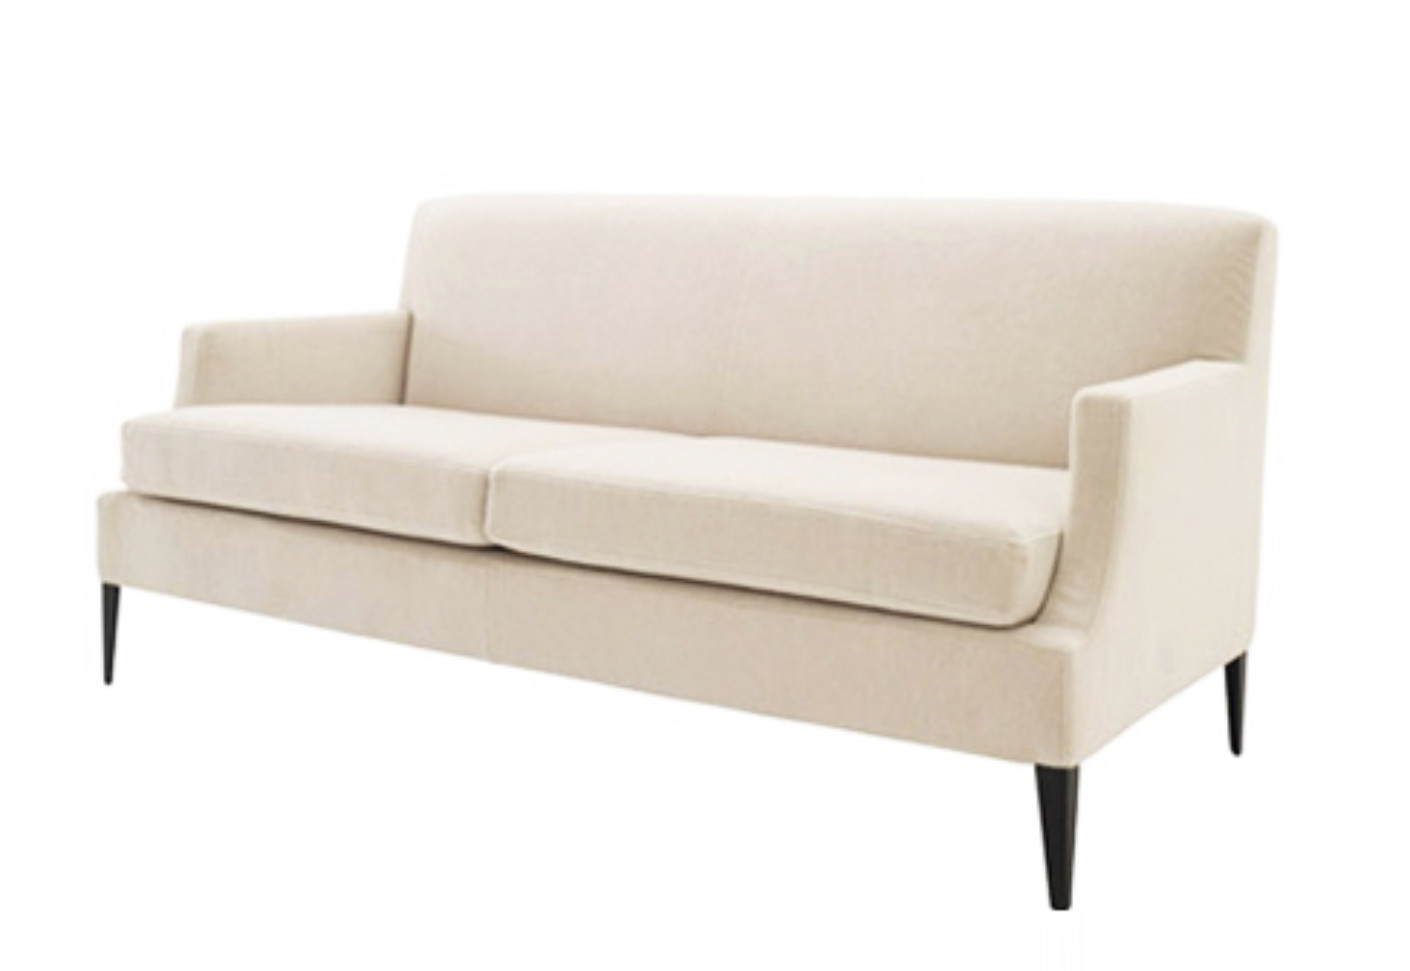 ligne roset nomade sofa couches designs voltige by stylepark